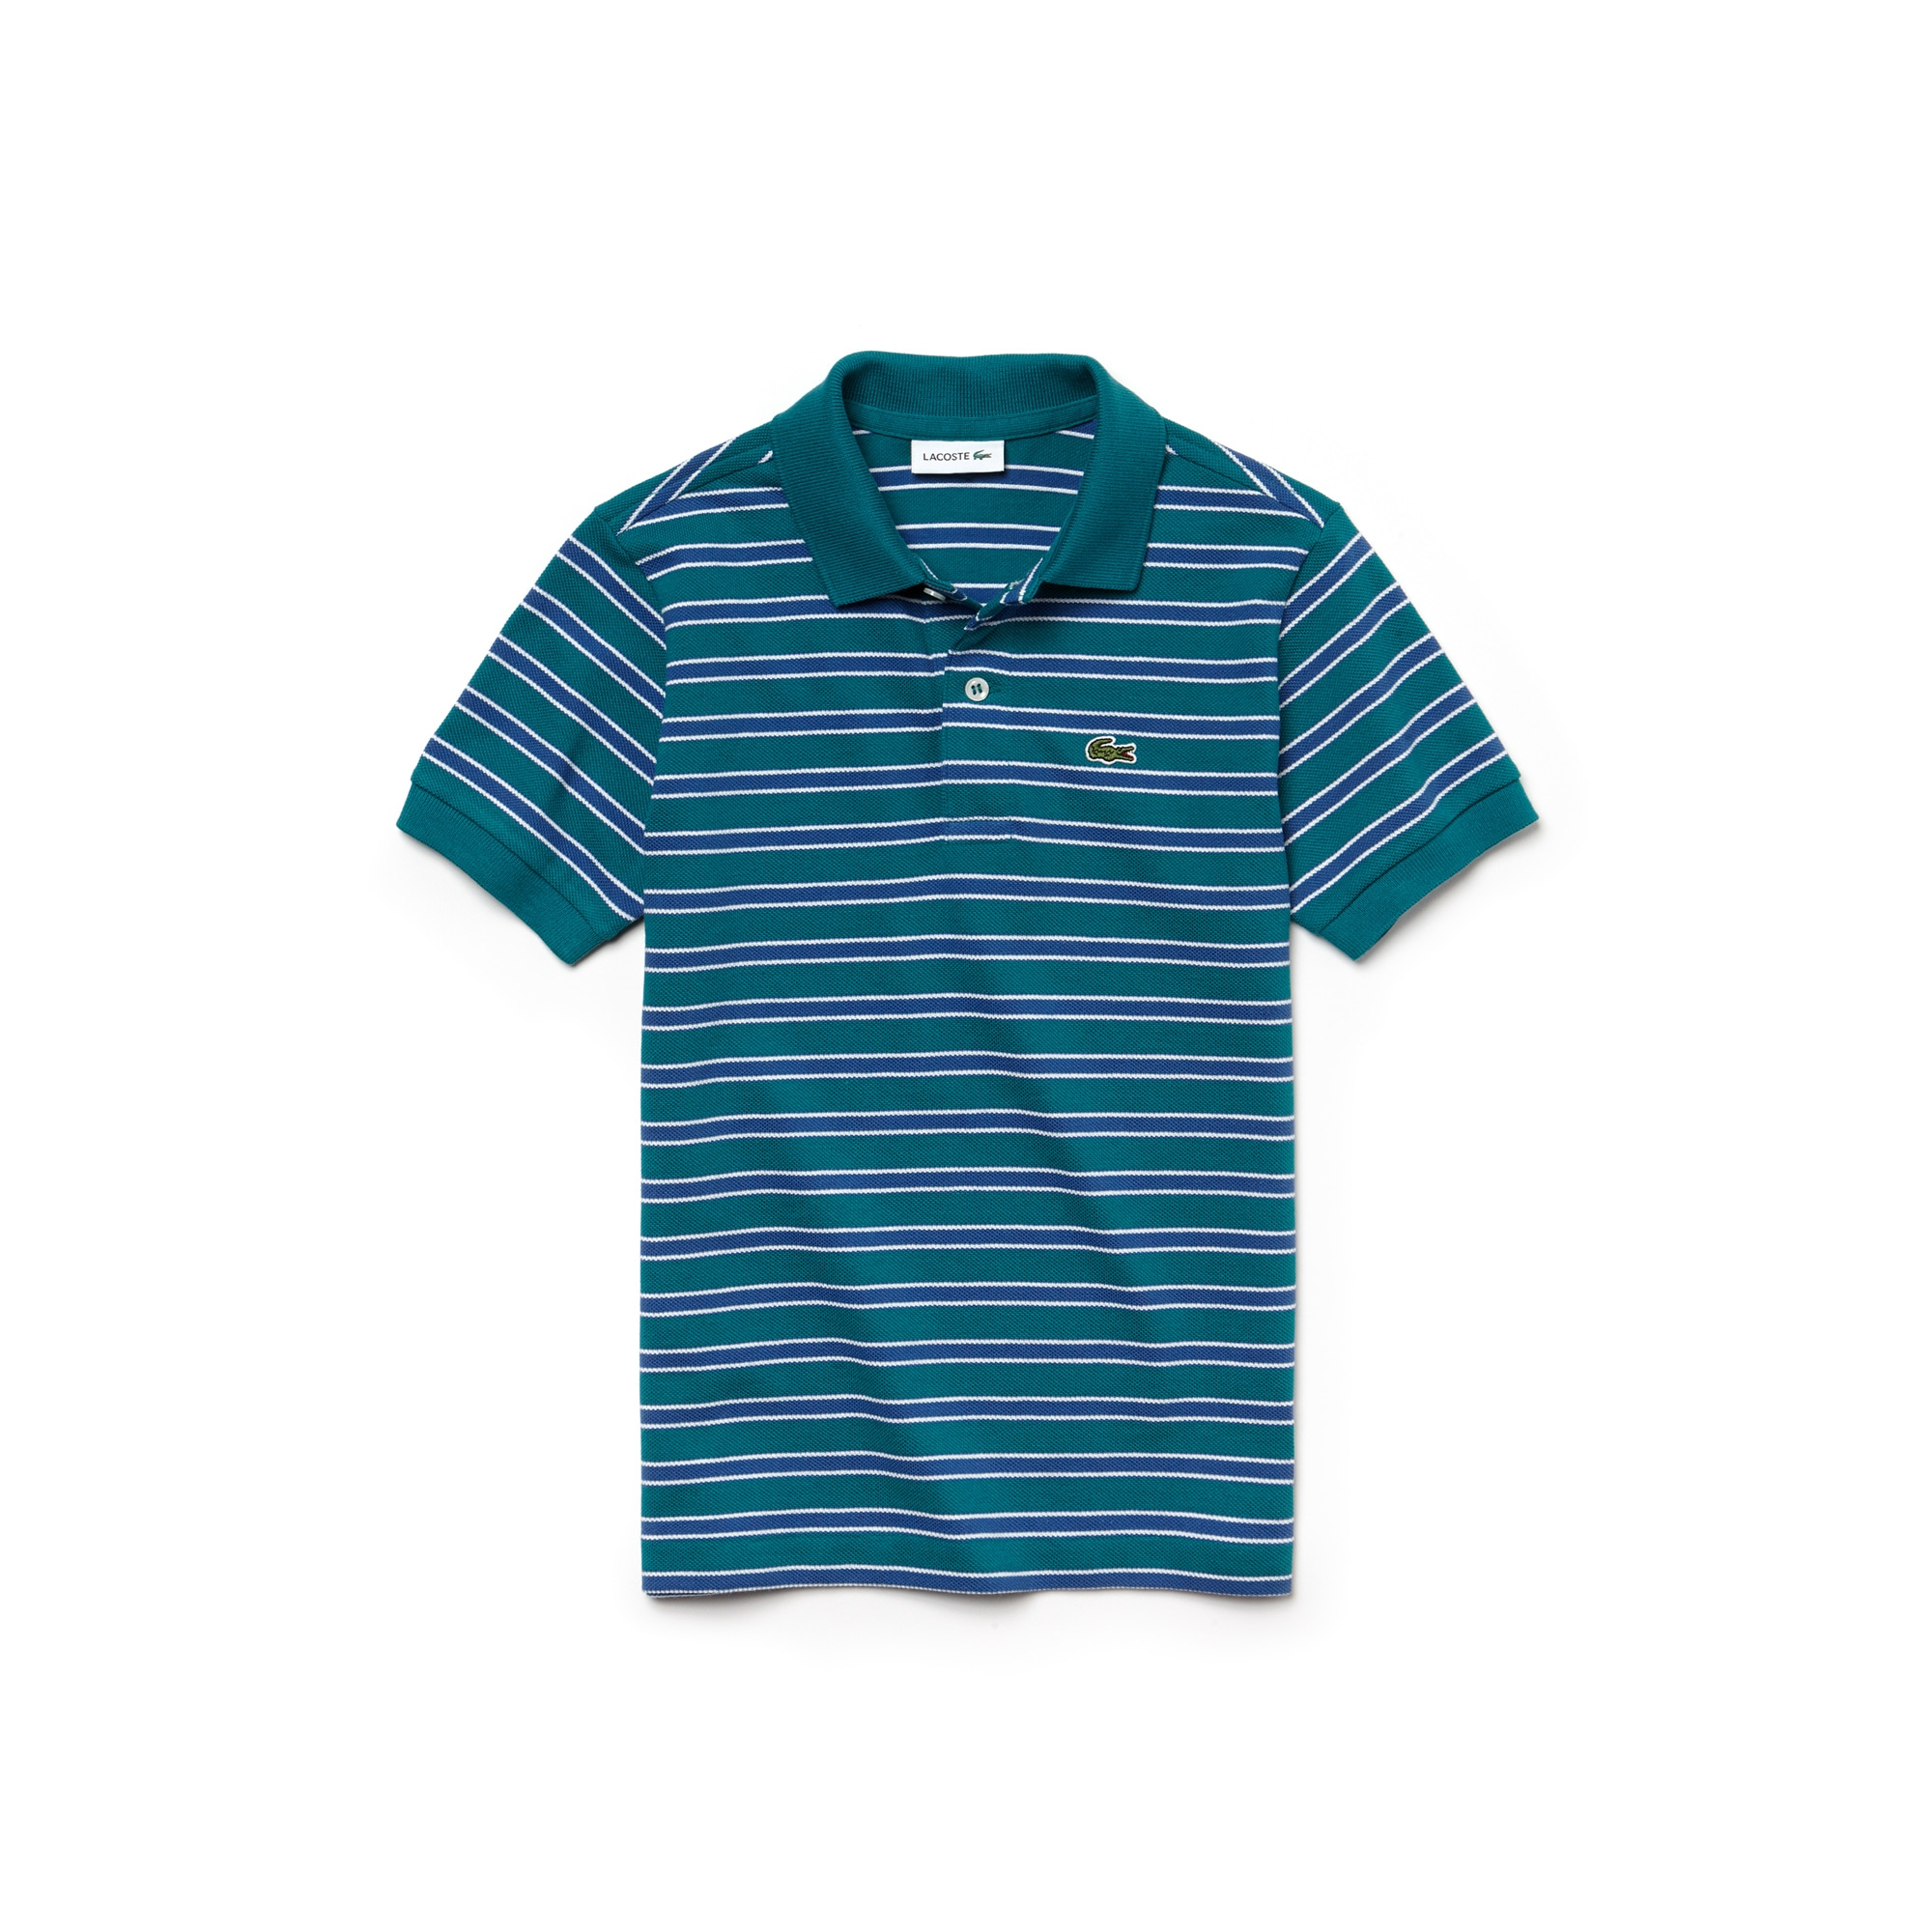 Boys' Lacoste Striped Cotton Piqué Polo Shirt